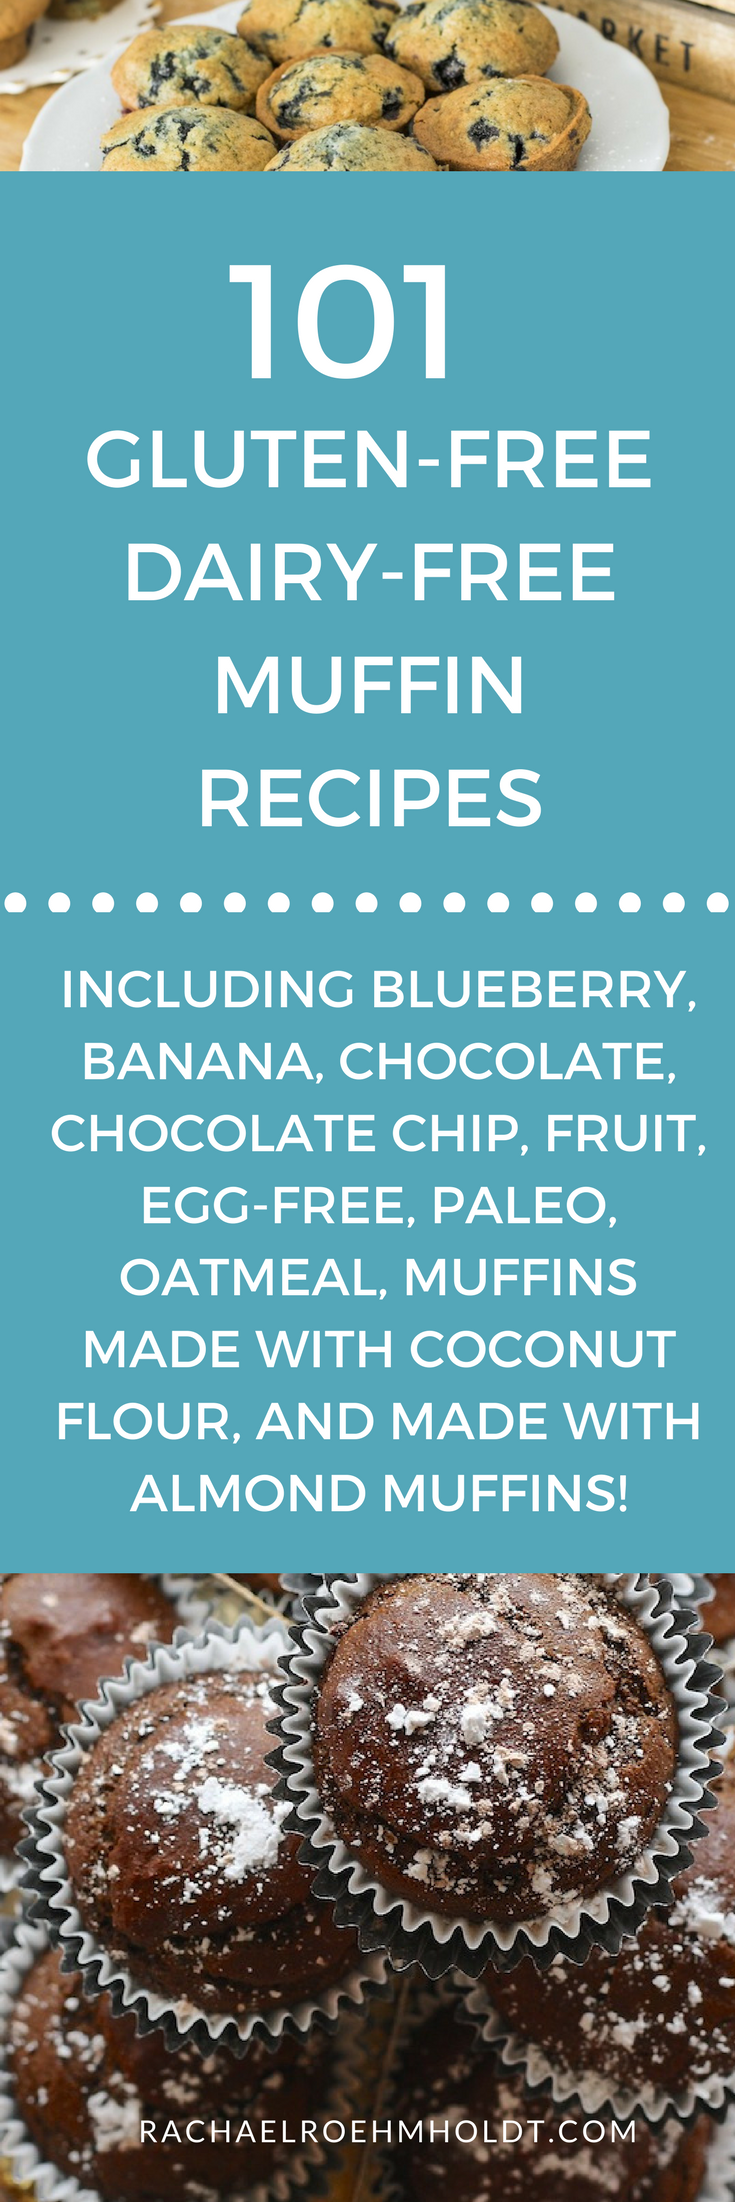 101 Gluten-free Dairy-free Muffin Recipes. Included in this recipe roundup are: gluten-free dairy-free blueberry muffins, gluten-free dairy-free banana recipes, gluten-free dairy-free chocolate muffins, gluten-free dairy-free chocolate chip muffins, gluten-free dairy-free fruit muffins, gluten-free dairy-free egg-free muffins, gluten-free dairy-free paleo muffins, gluten-free dairy-free oatmeal muffins, gluten-free dairy-free muffins made with coconut flour, and gluten-free dairy-free muffins made with almond flour recipes.